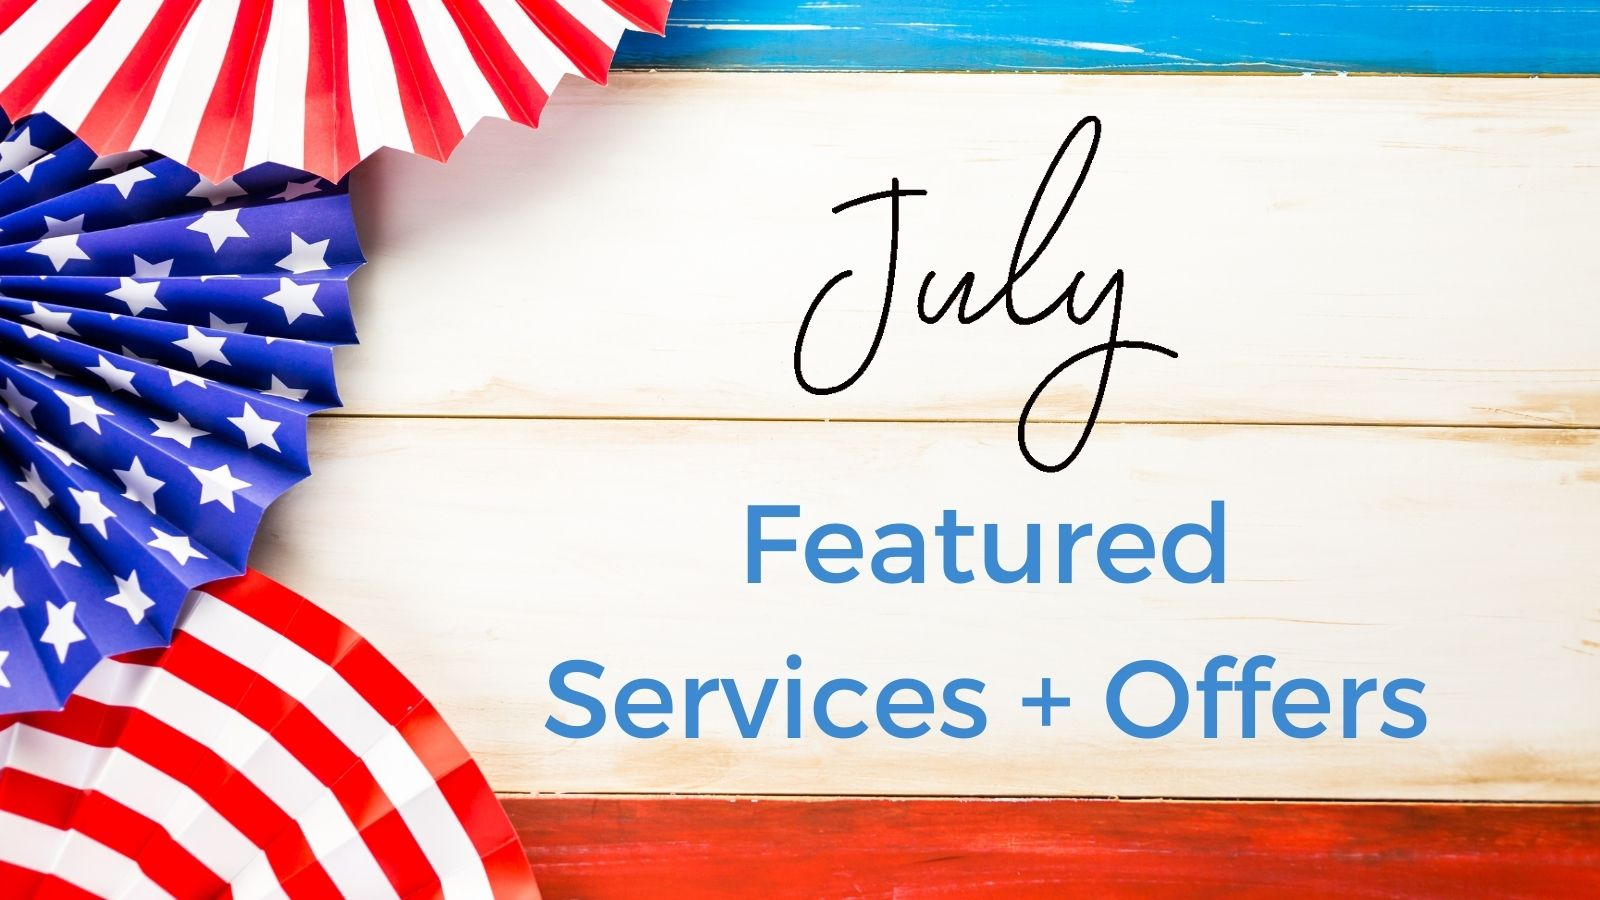 Azura July Featured Services